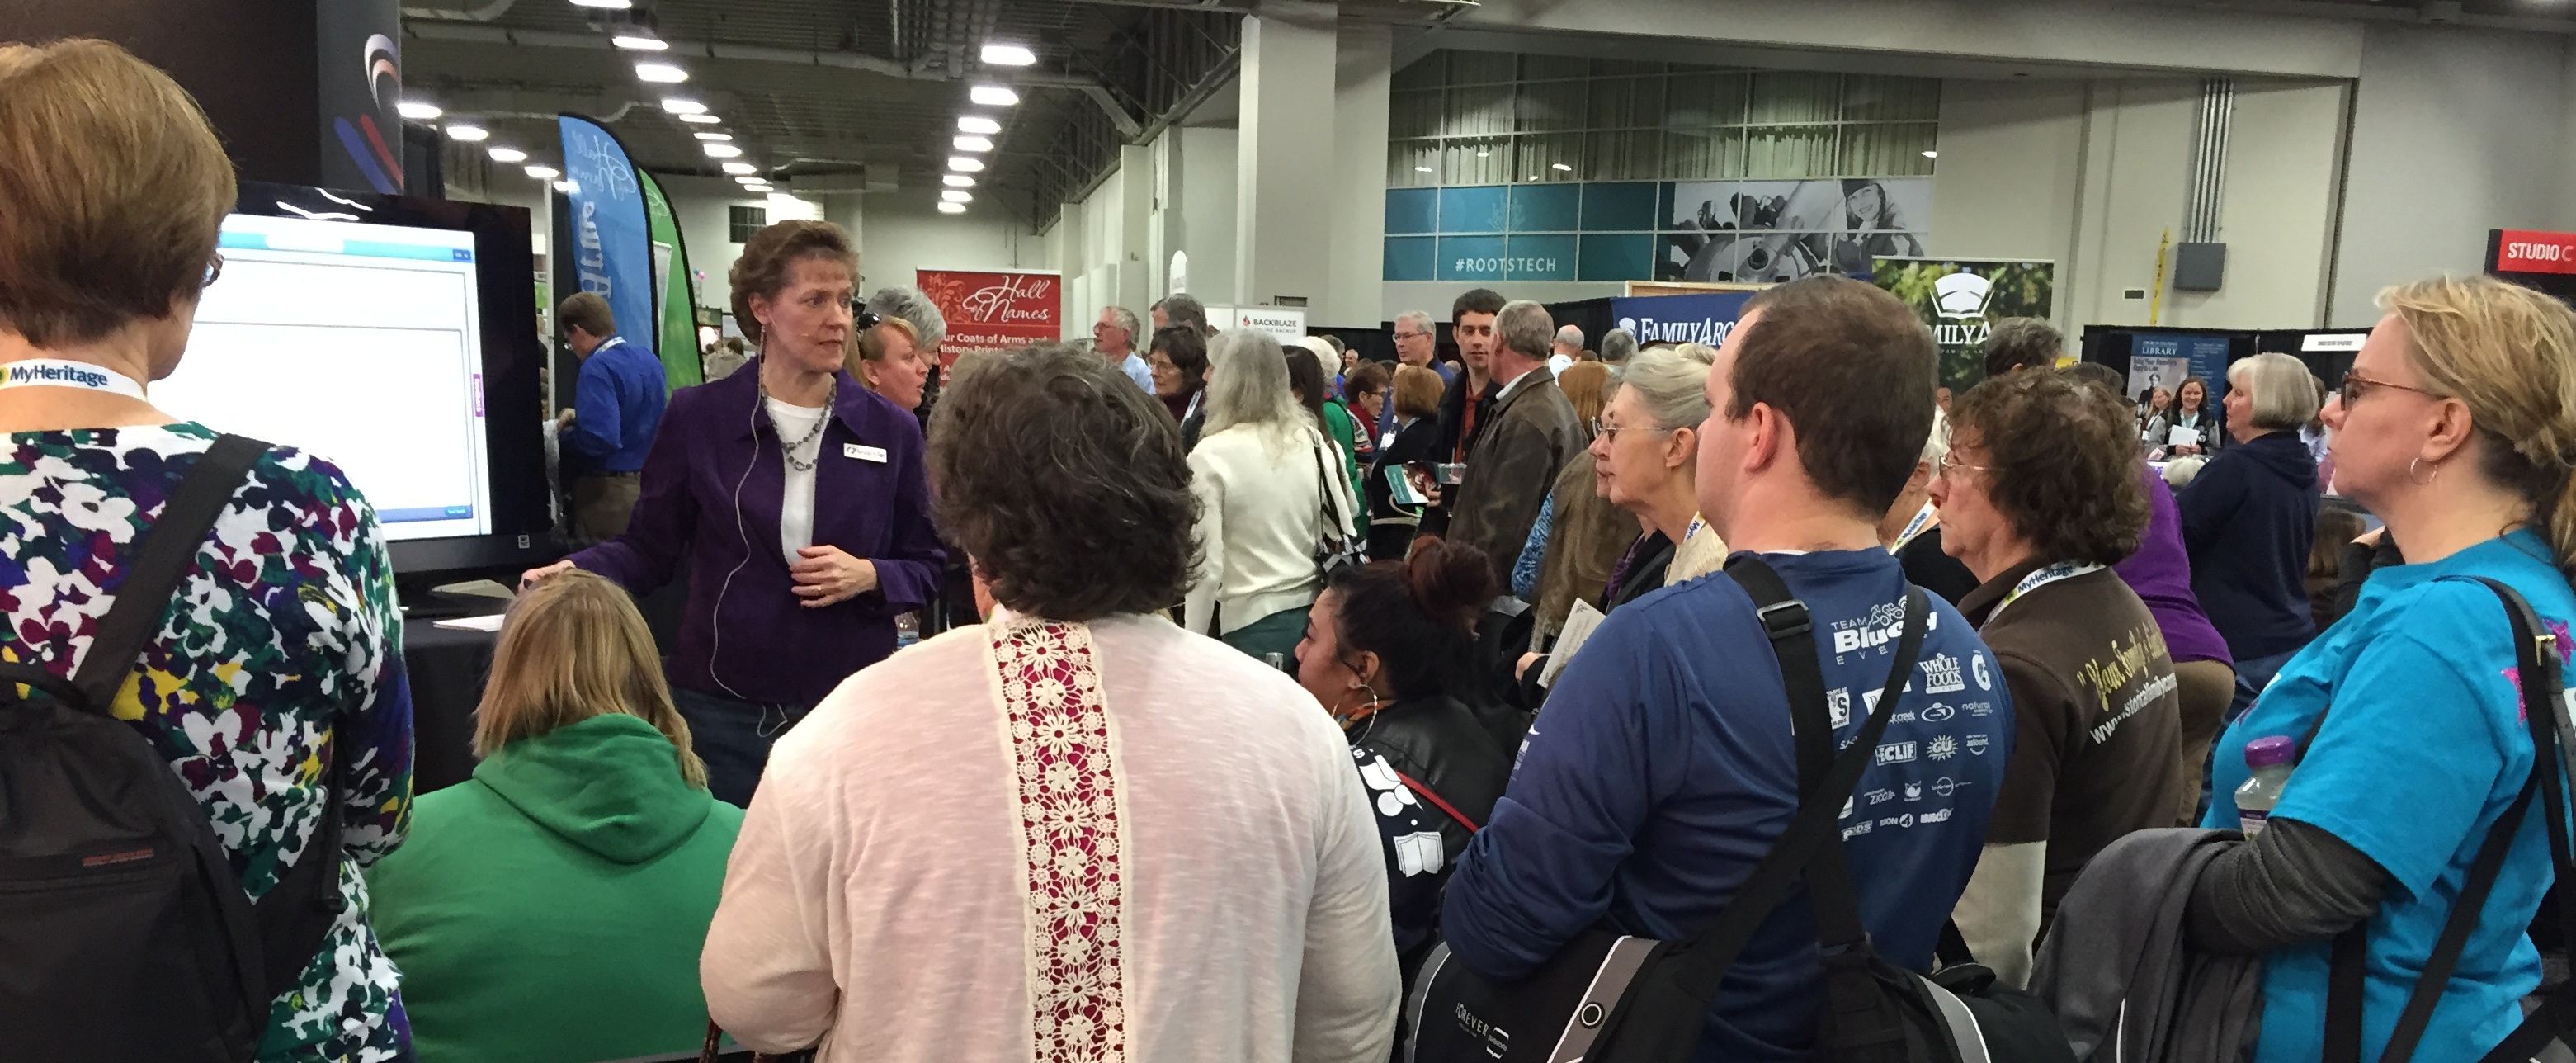 RootsTech 2015-3 cropped